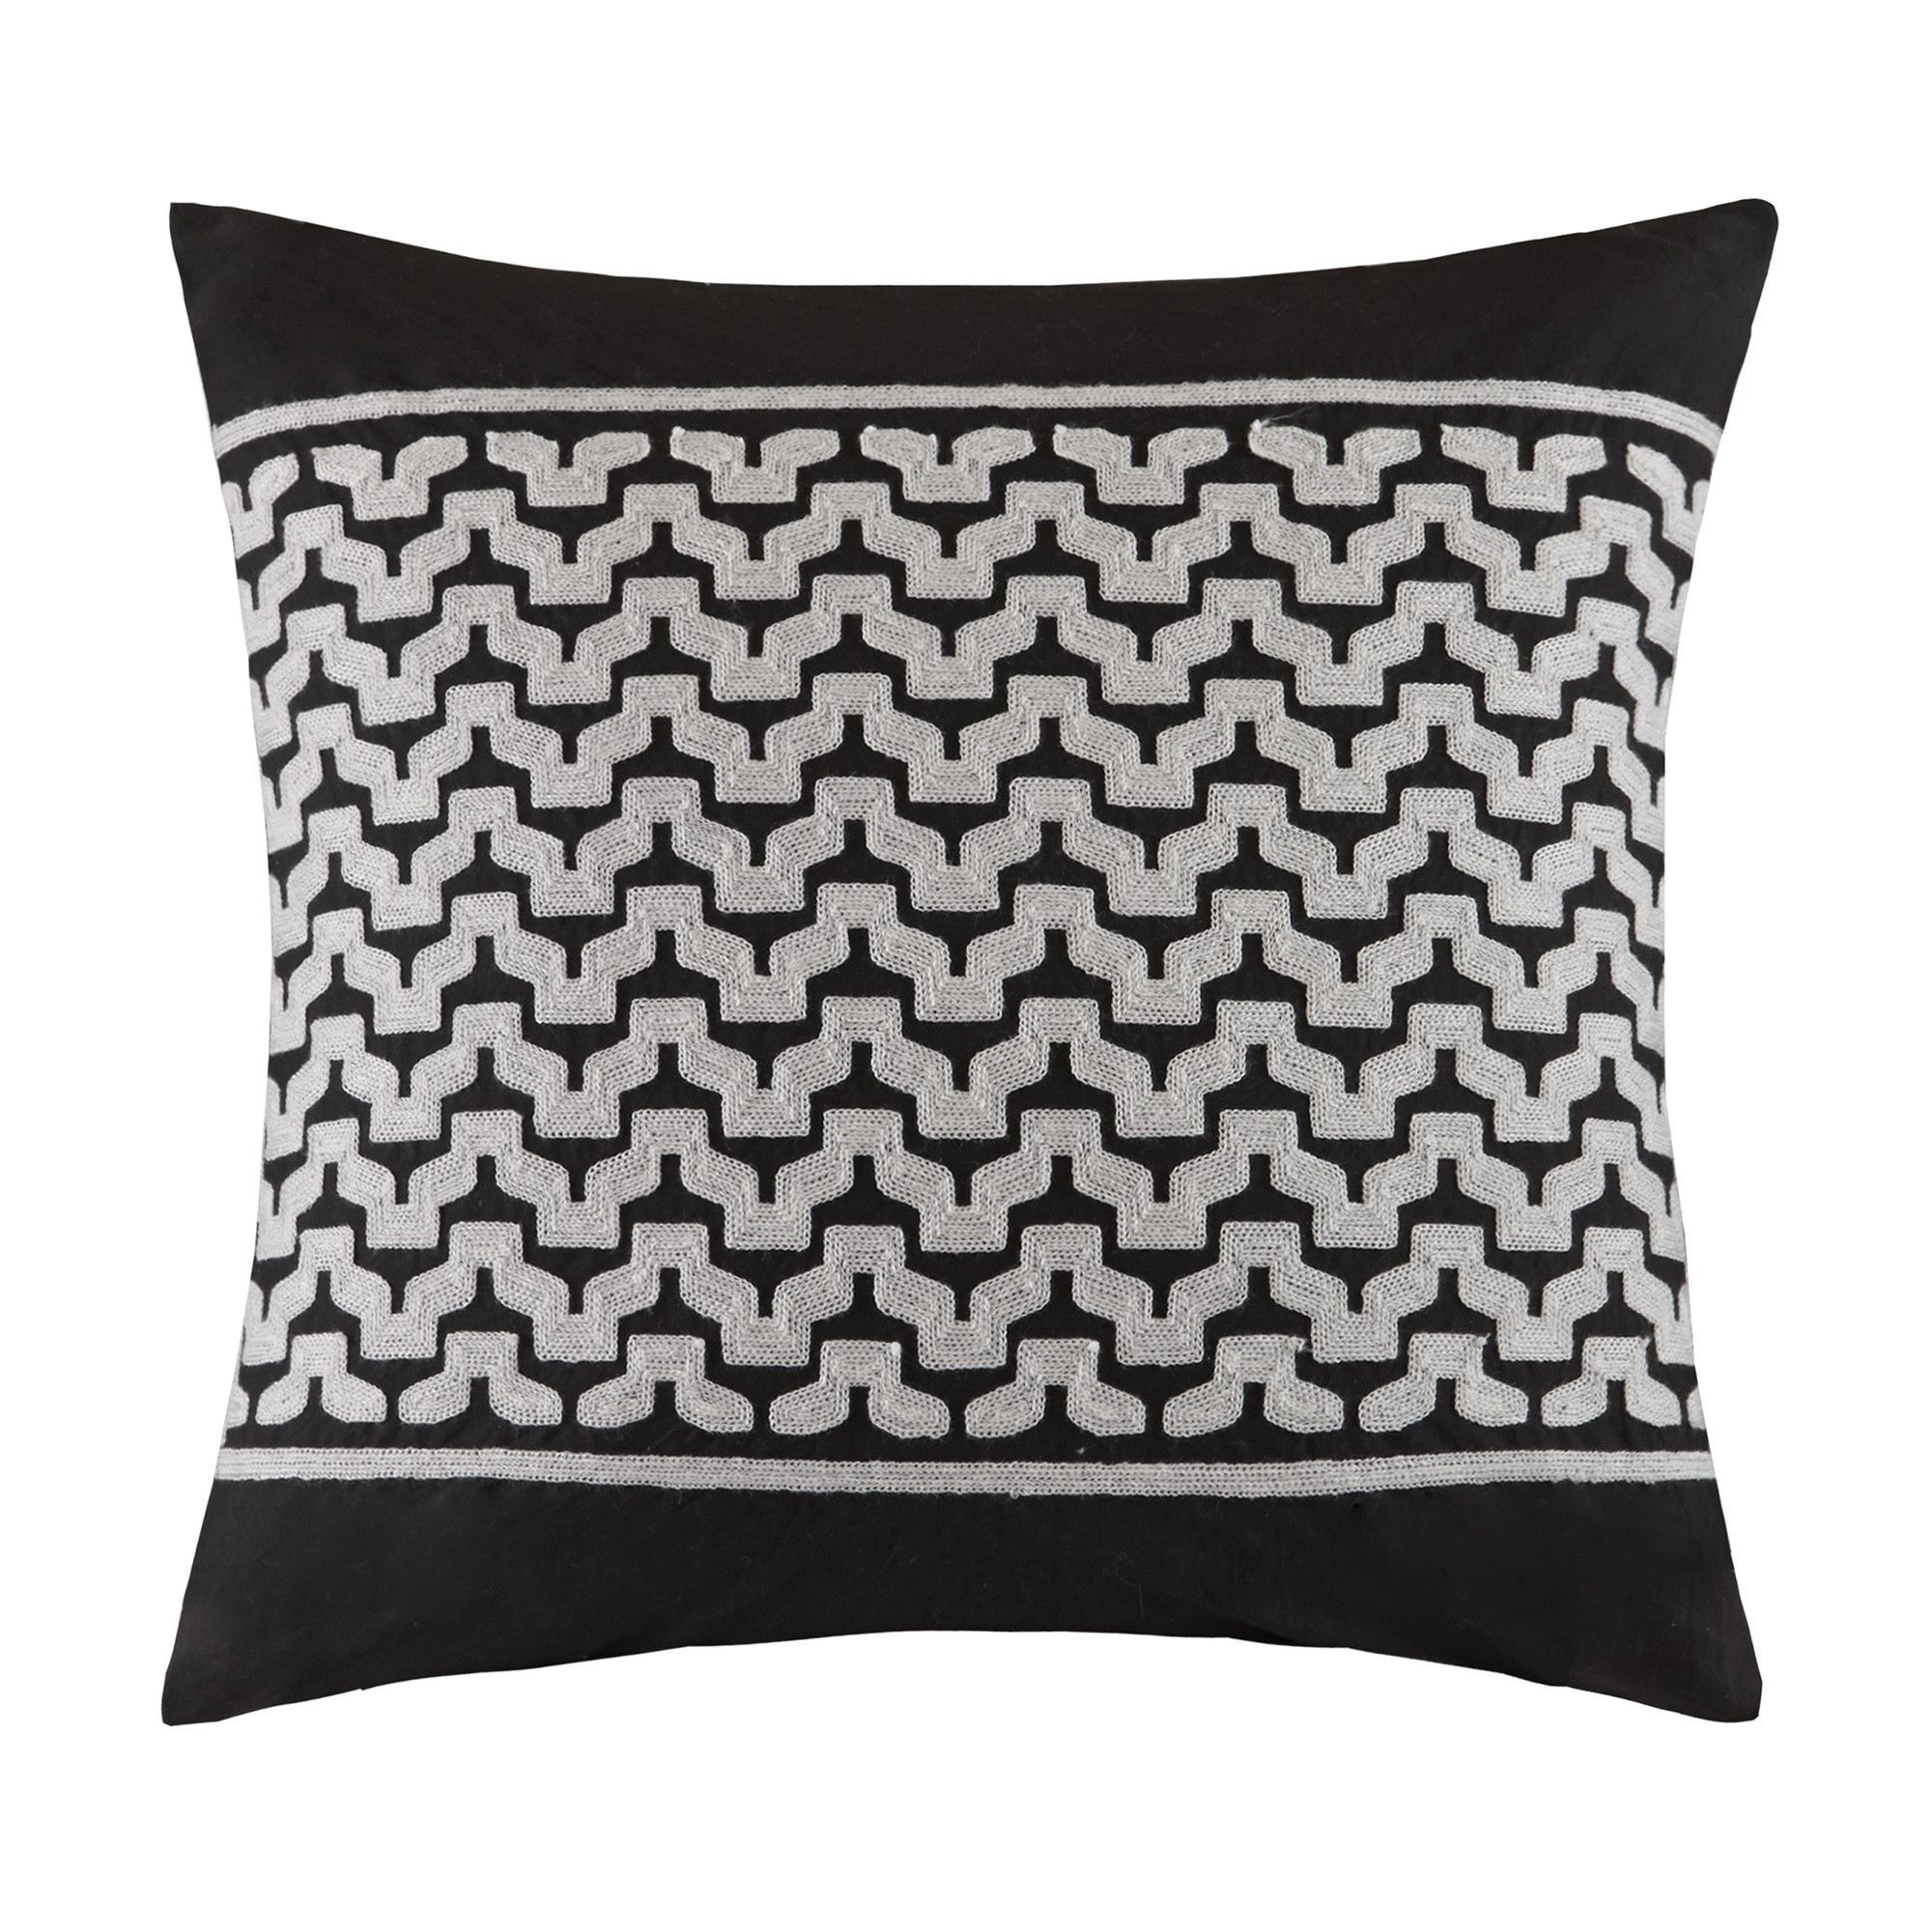 Cheyenne Embroidered Cotton Throw Pillow Products Pinterest - Cojines-negros